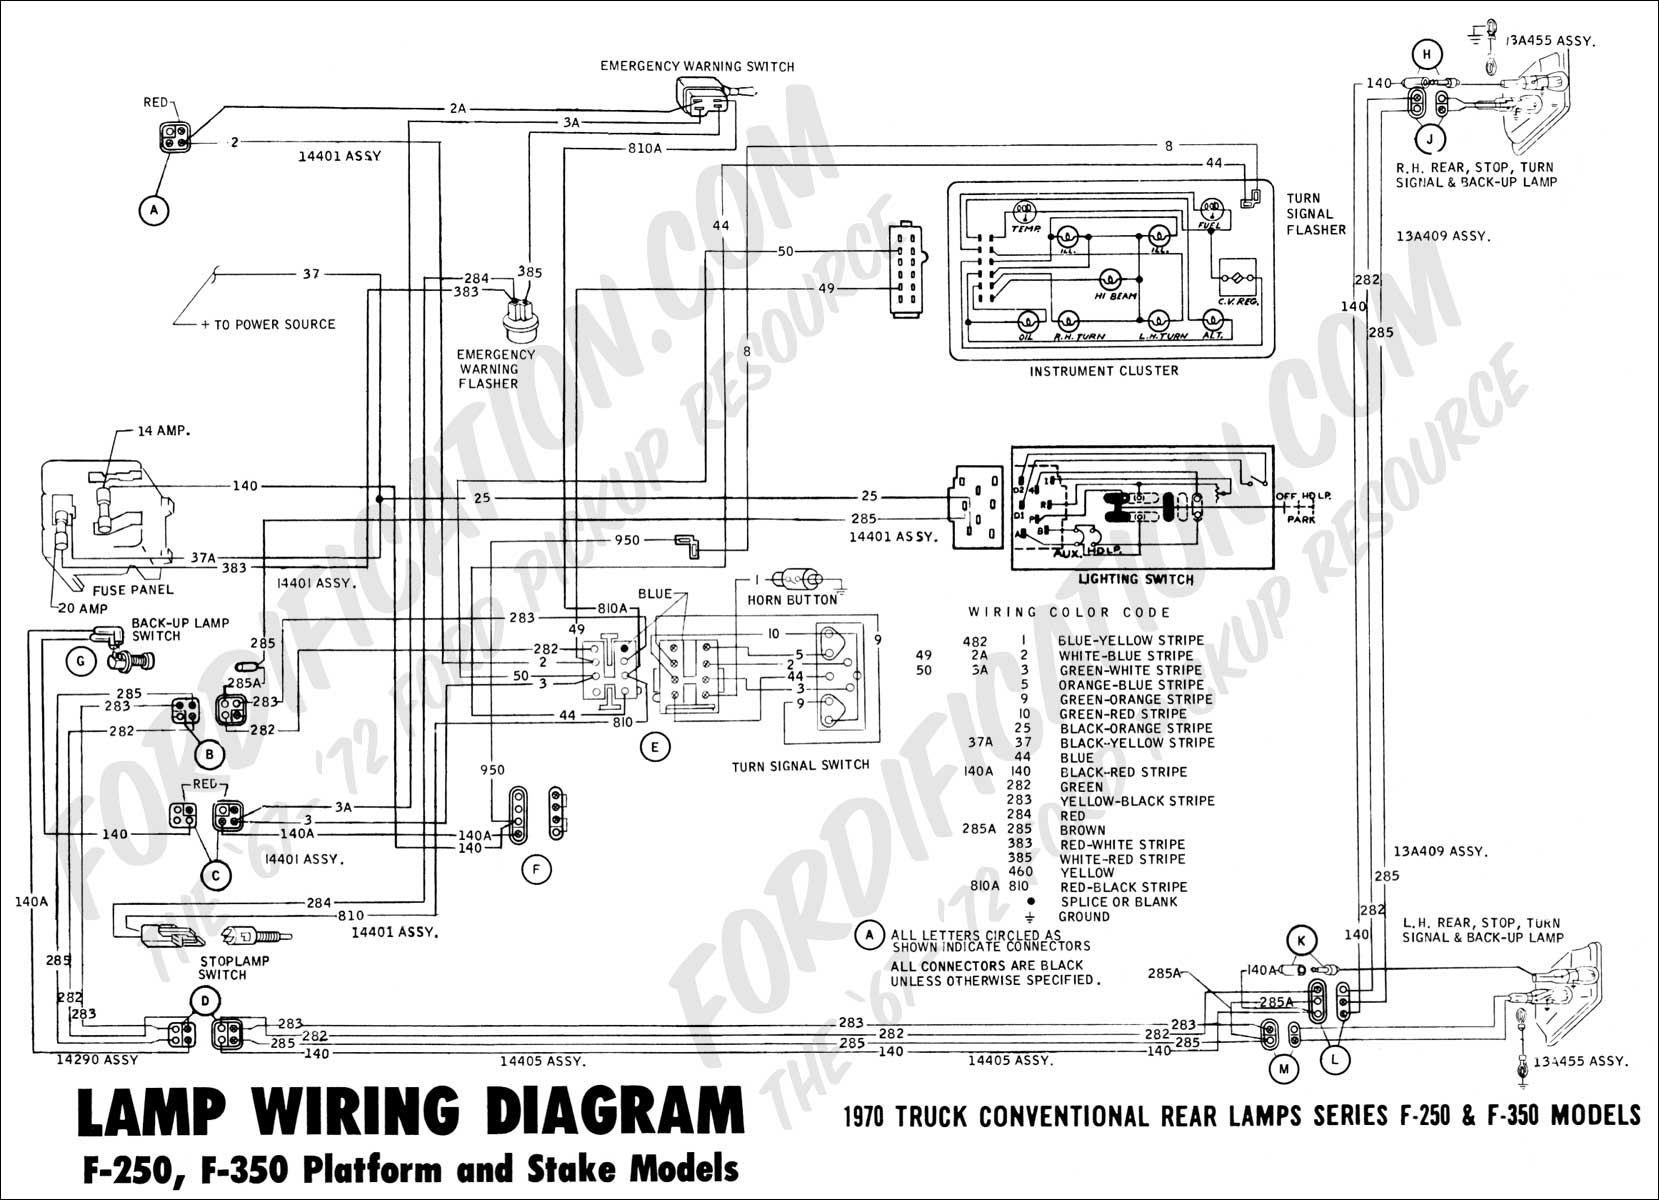 1993 F150 Headlight Wiring Diagram The Portal And Forum Of 1994 Ford F 150 Engine Switch 1995 F250 Diagrams Rh 89 Treatchildtrauma De Gauge 1986 Dashboard